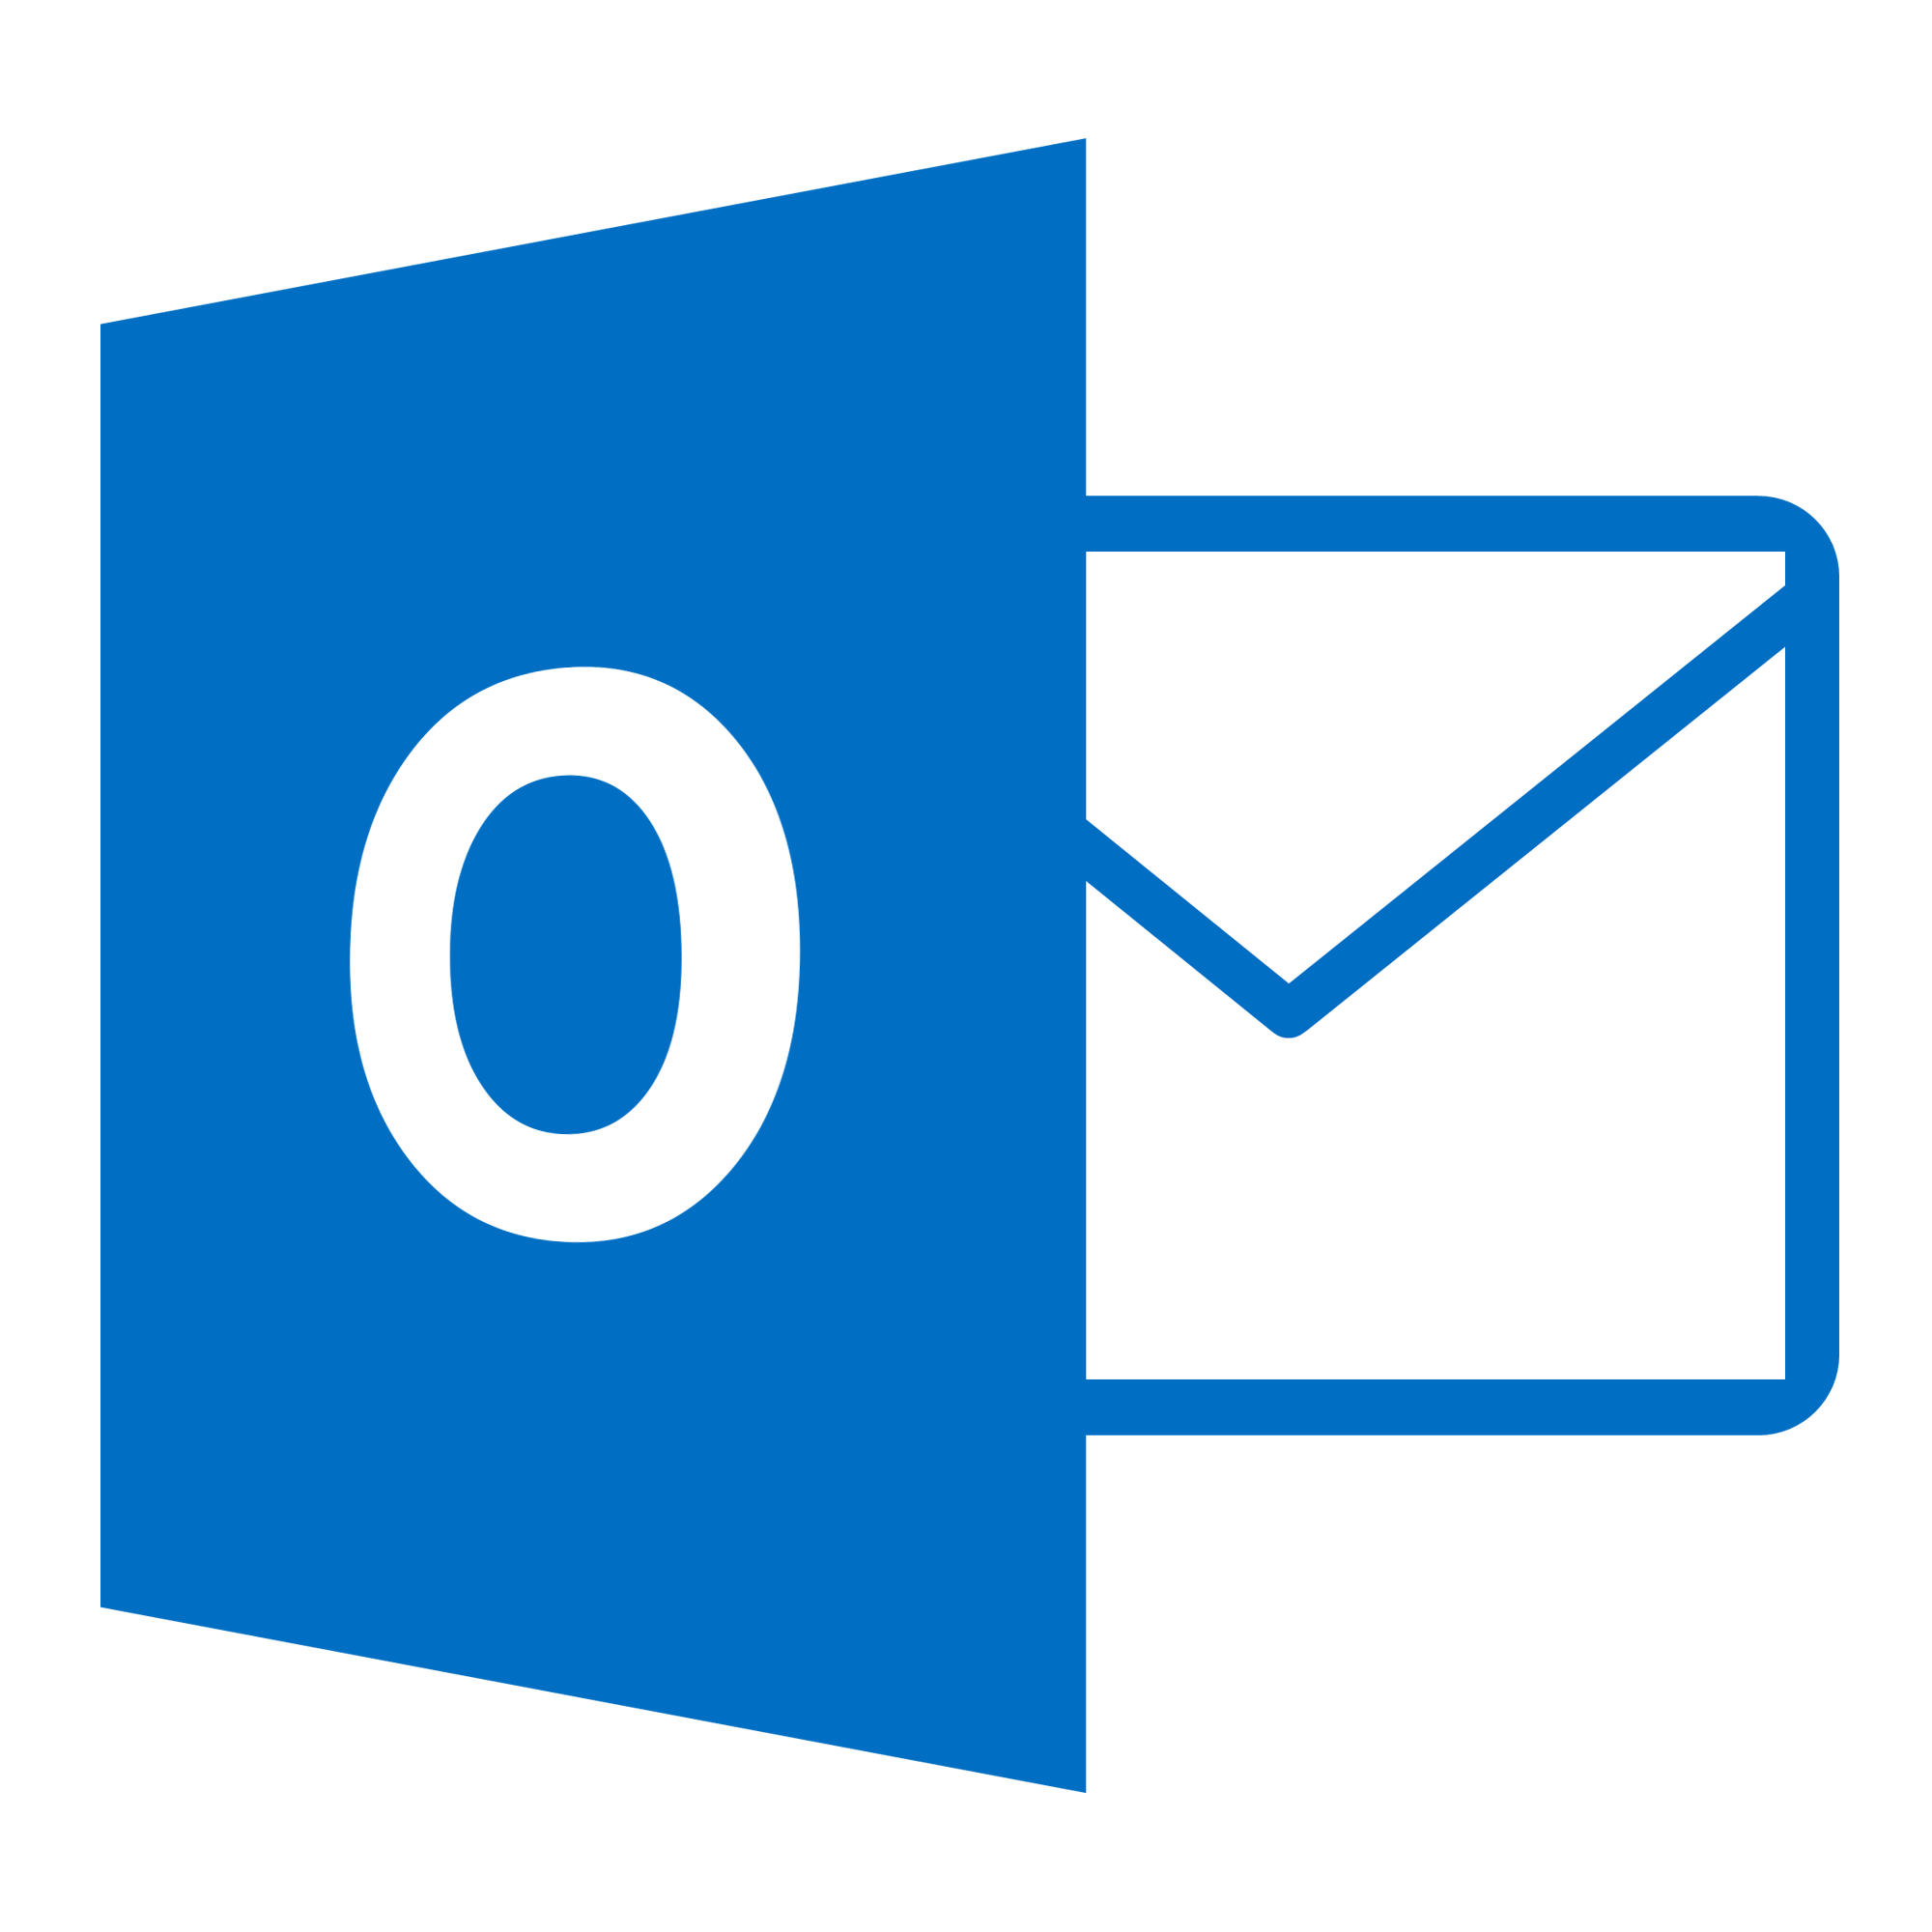 9 Outlook Web App Icon Images